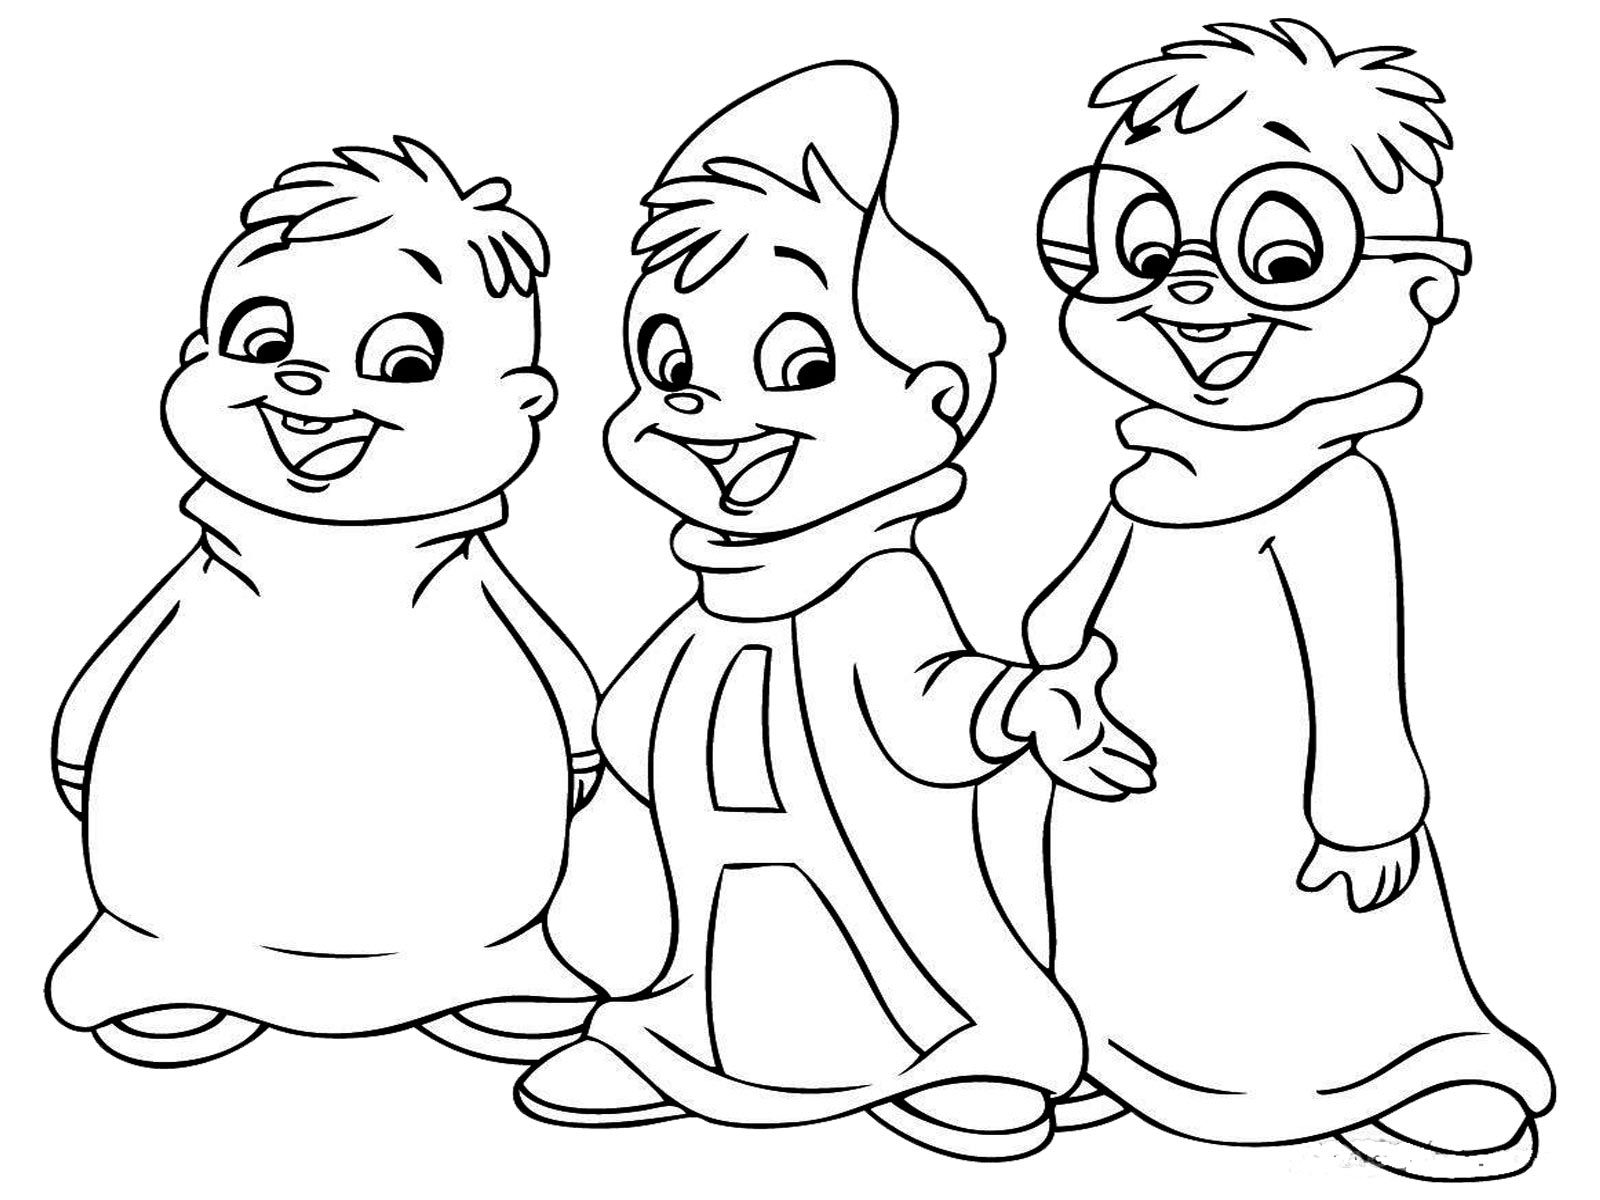 cartoons coloring pages cartoon network coloring pages download and print for free pages coloring cartoons